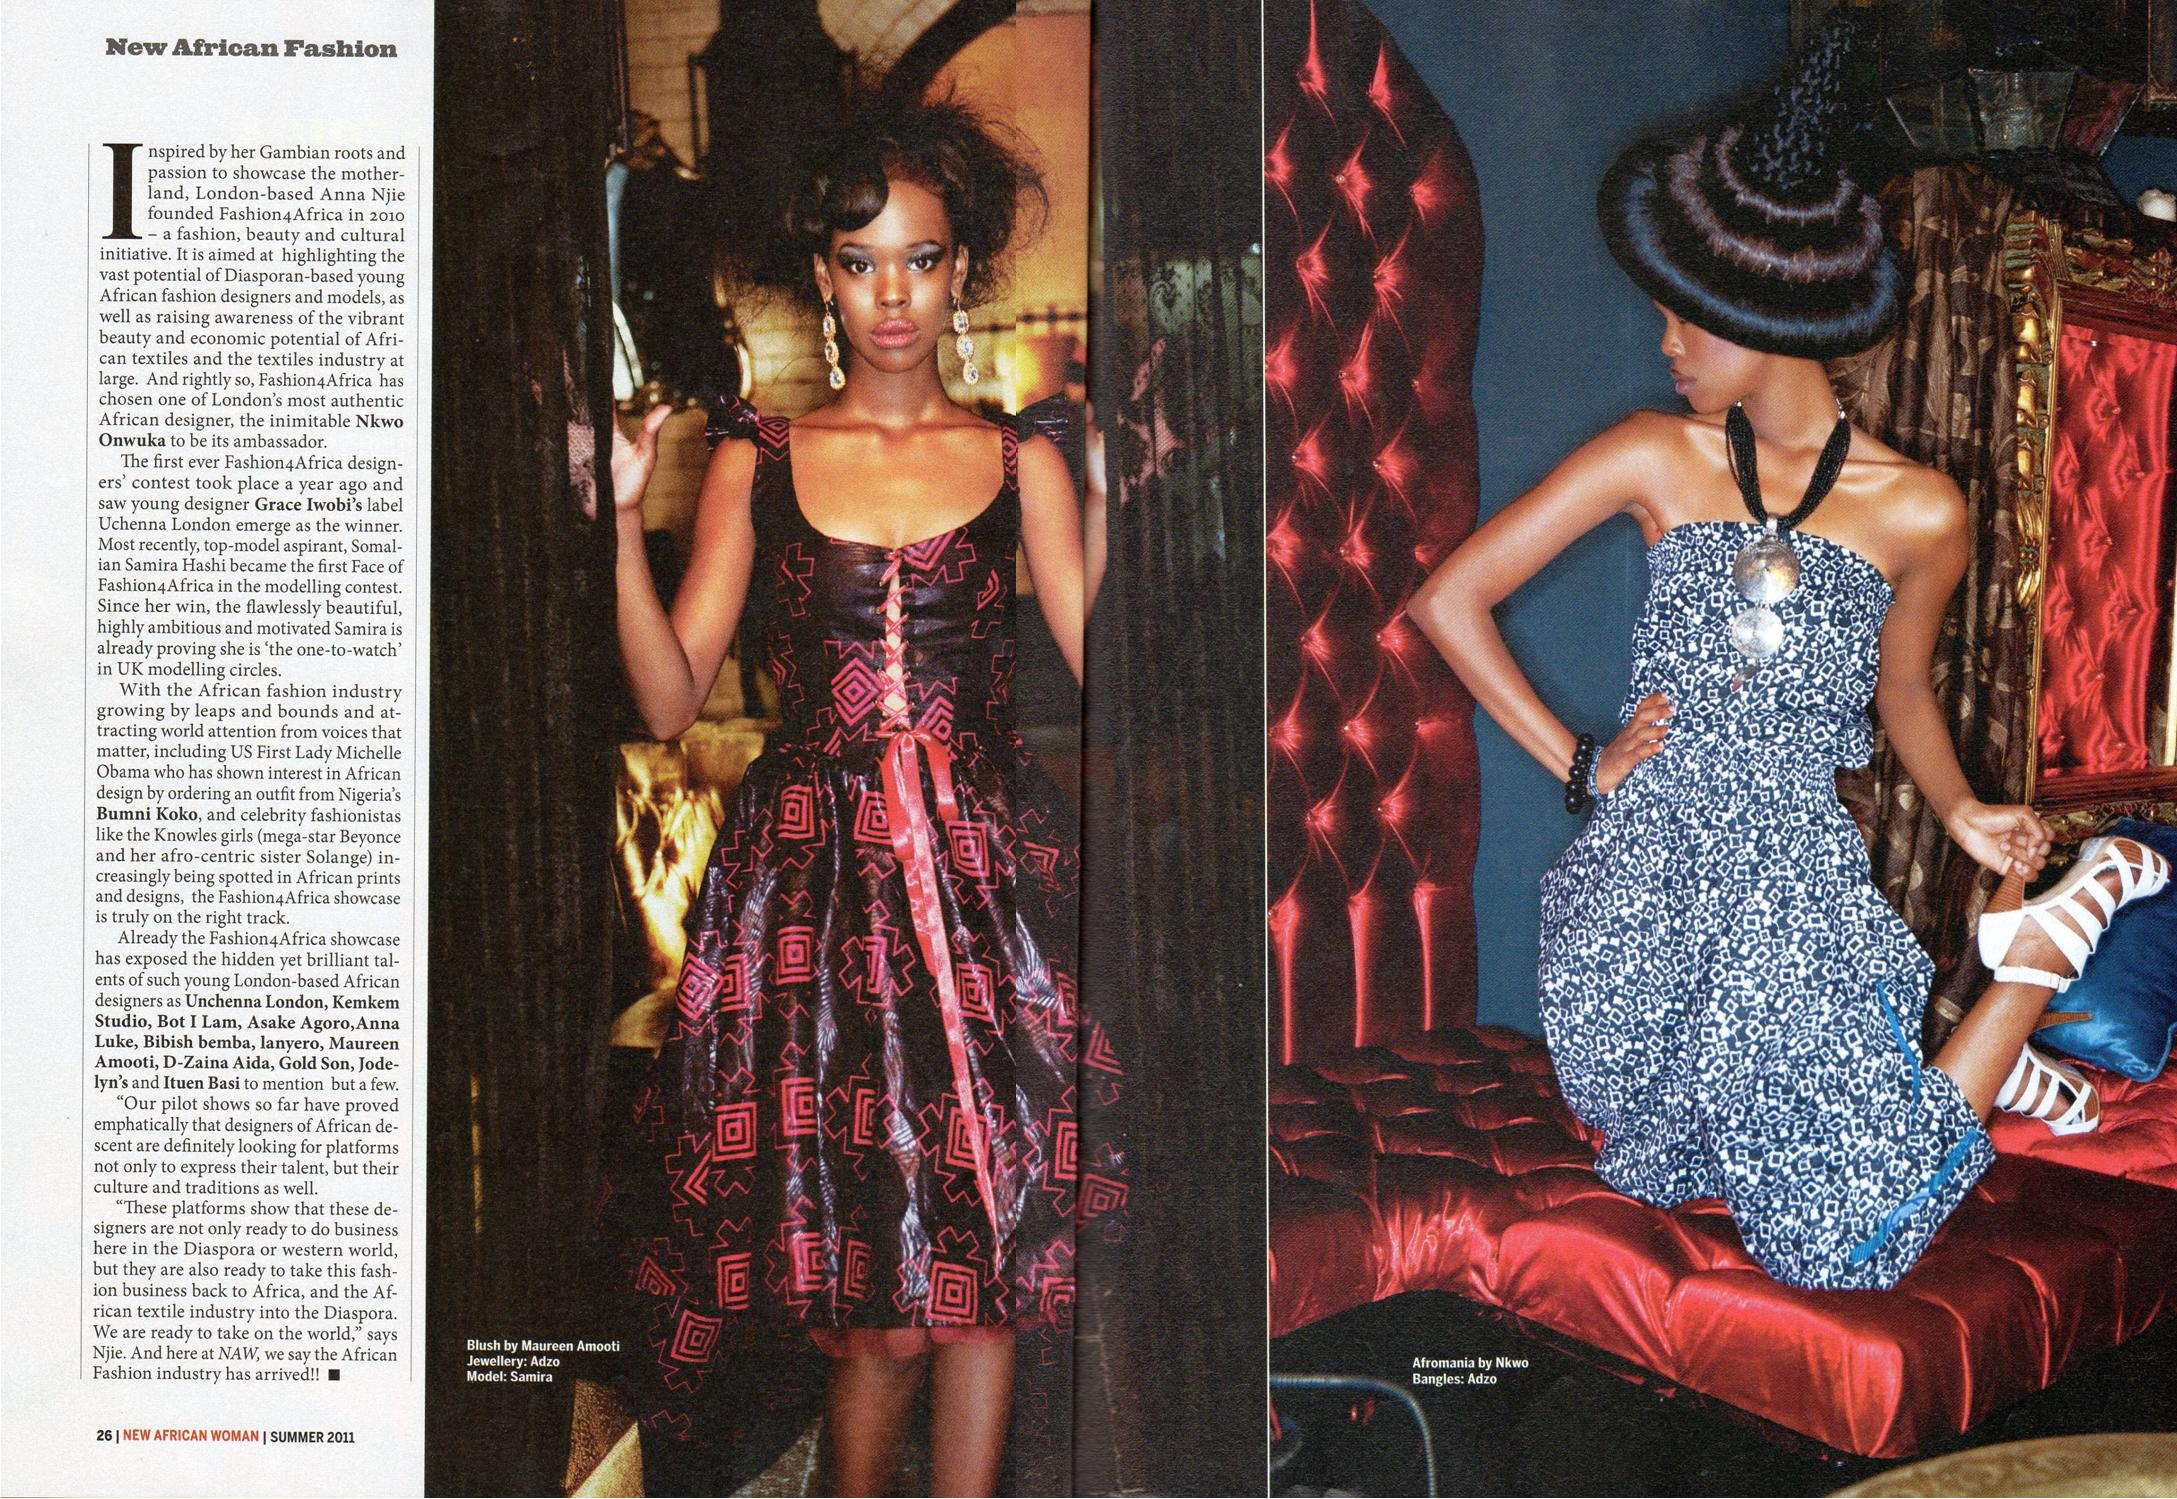 My Stylist Work My Work Featured In New African Woman Magazine Erica Matthews